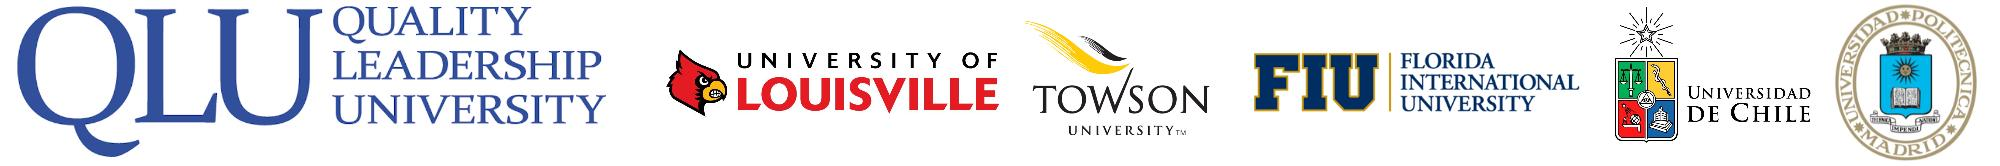 Quality Leadership University – University of Louisville Panamá